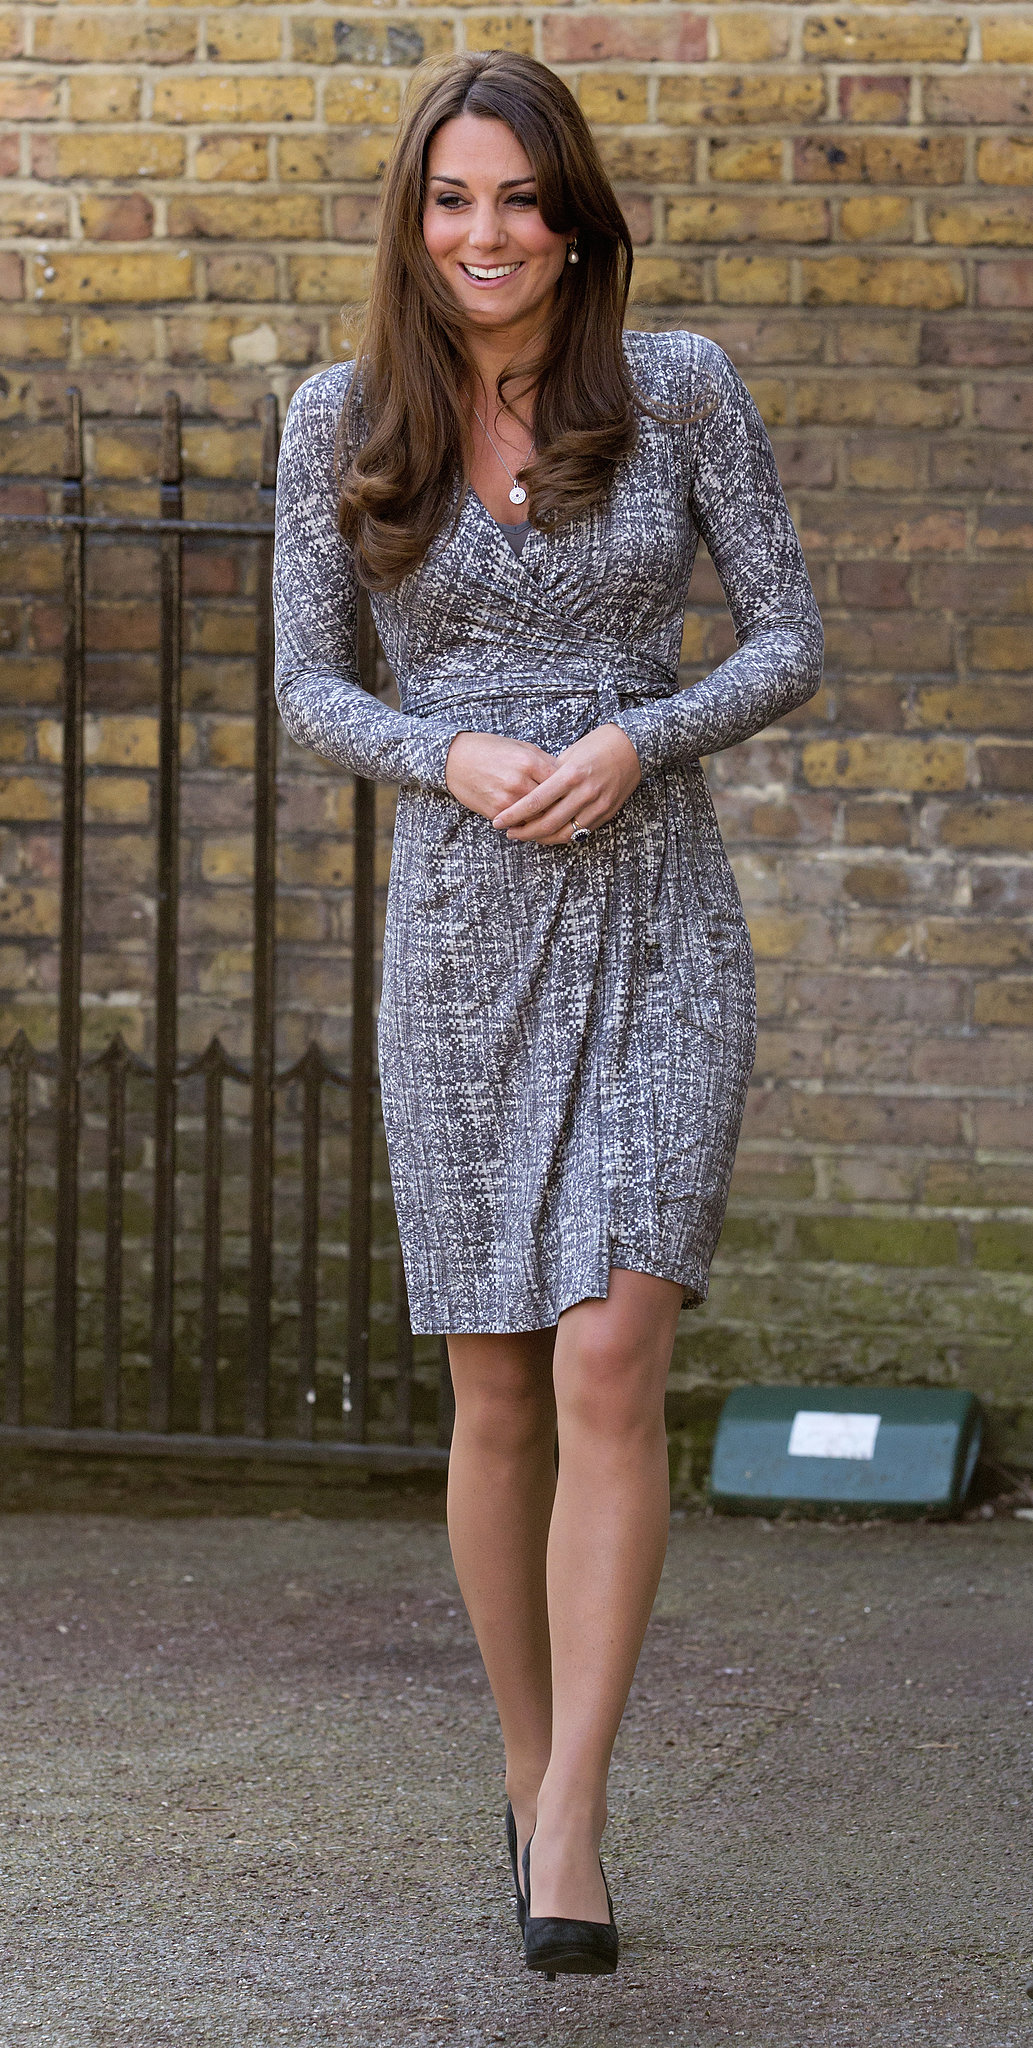 In February 2013, Kate visited Hope House in London after taking a short vacation with her family and Prince William.